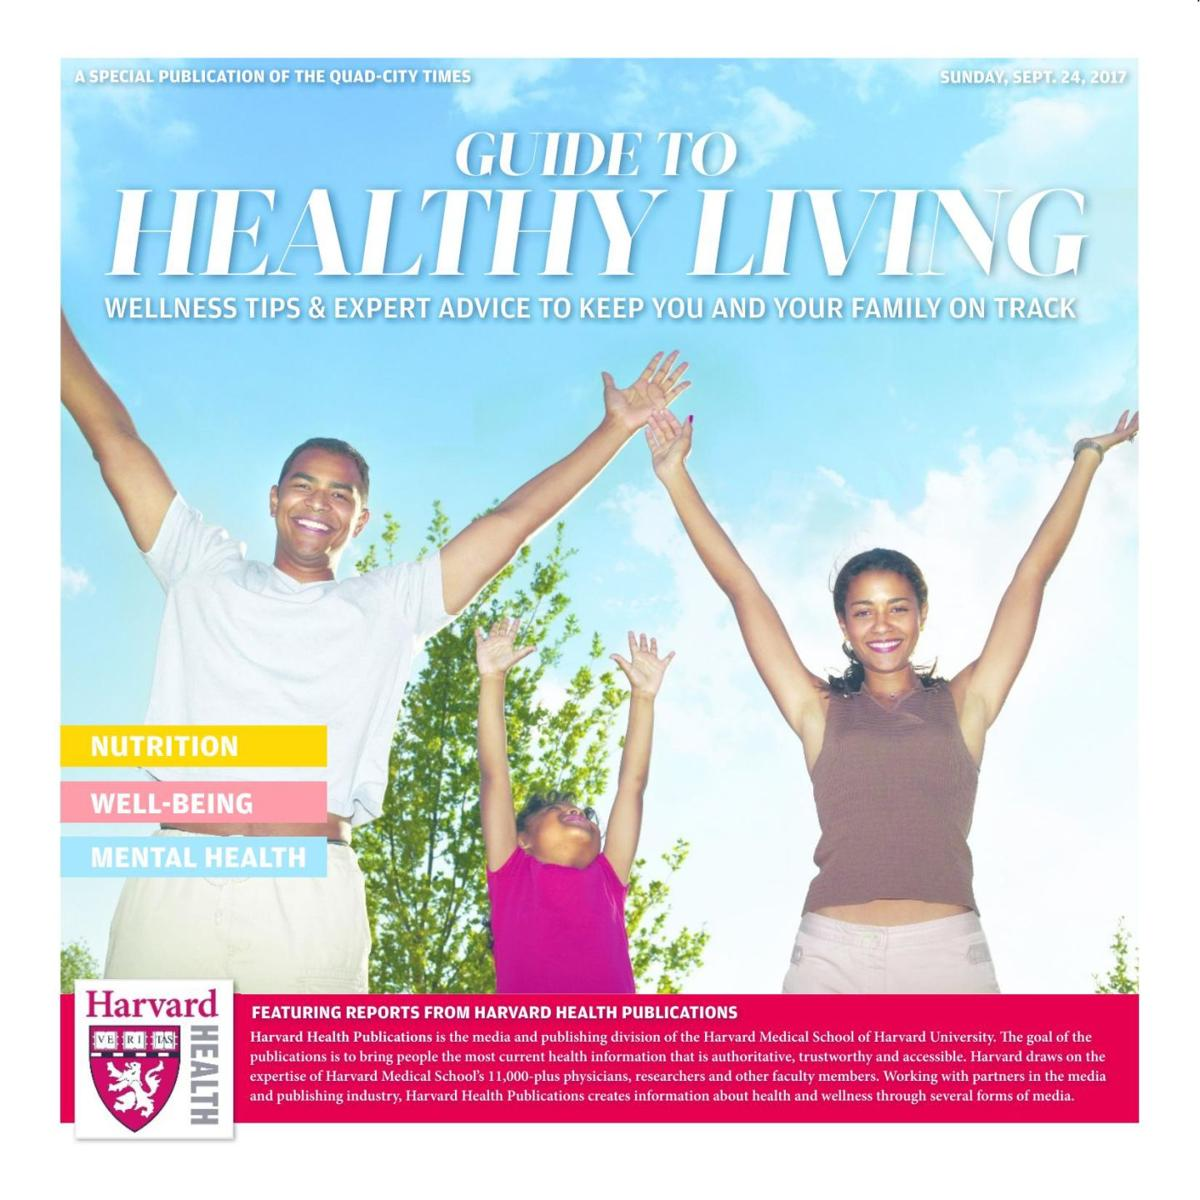 Guide to Health Living 9-17